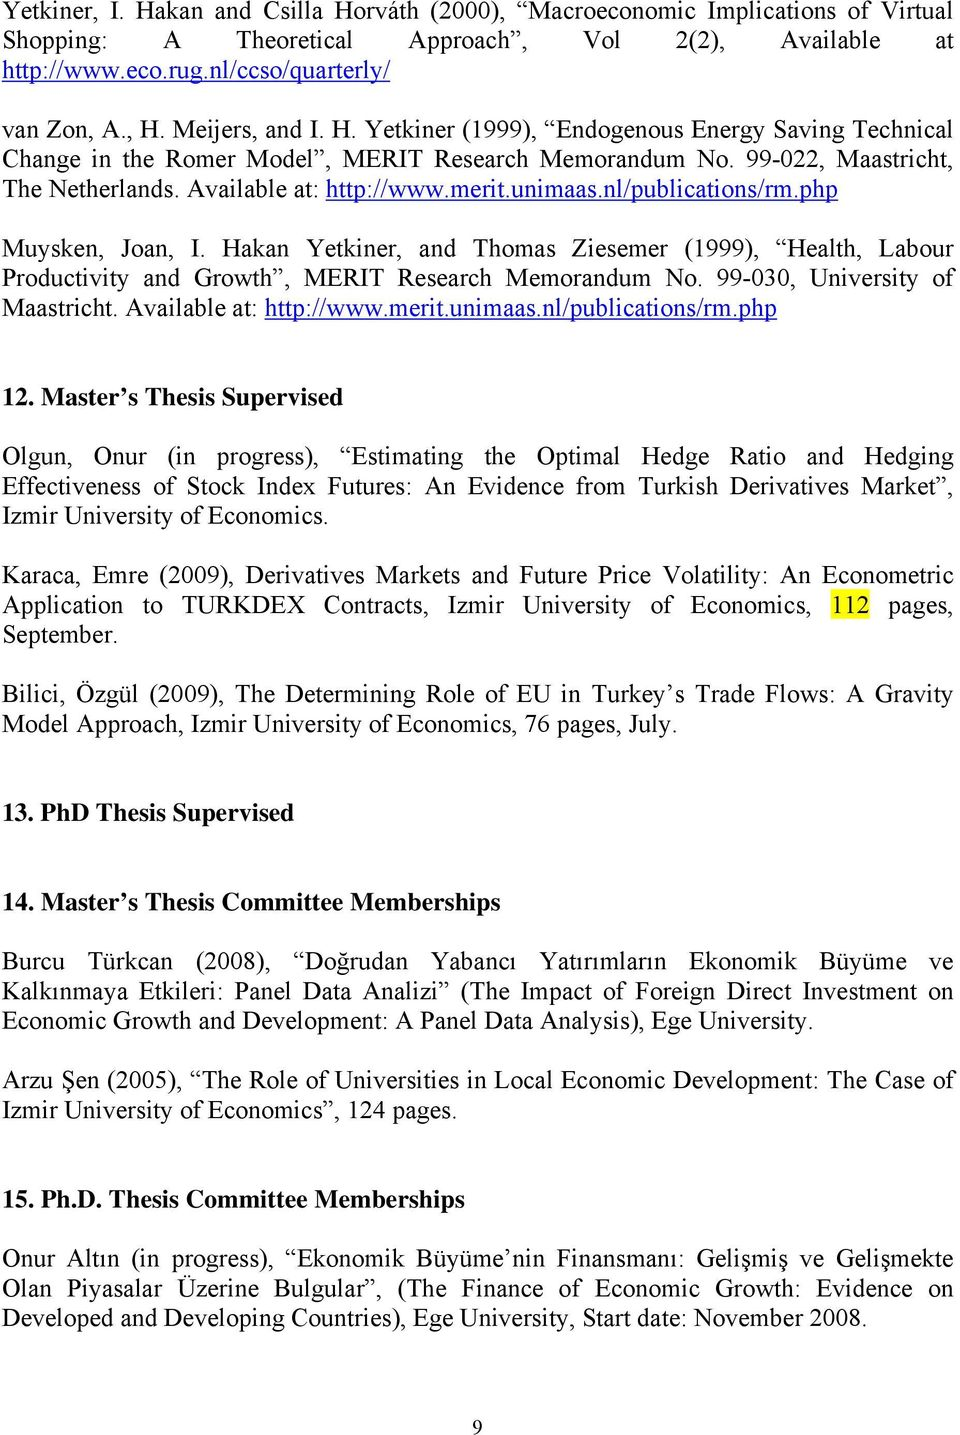 unimaas.nl/publications/rm.php Muysken, Joan, I. Hakan Yetkiner, and Thomas Ziesemer (1999), Health, Labour Productivity and Growth, MERIT Research Memorandum No. 99-030, University of Maastricht.